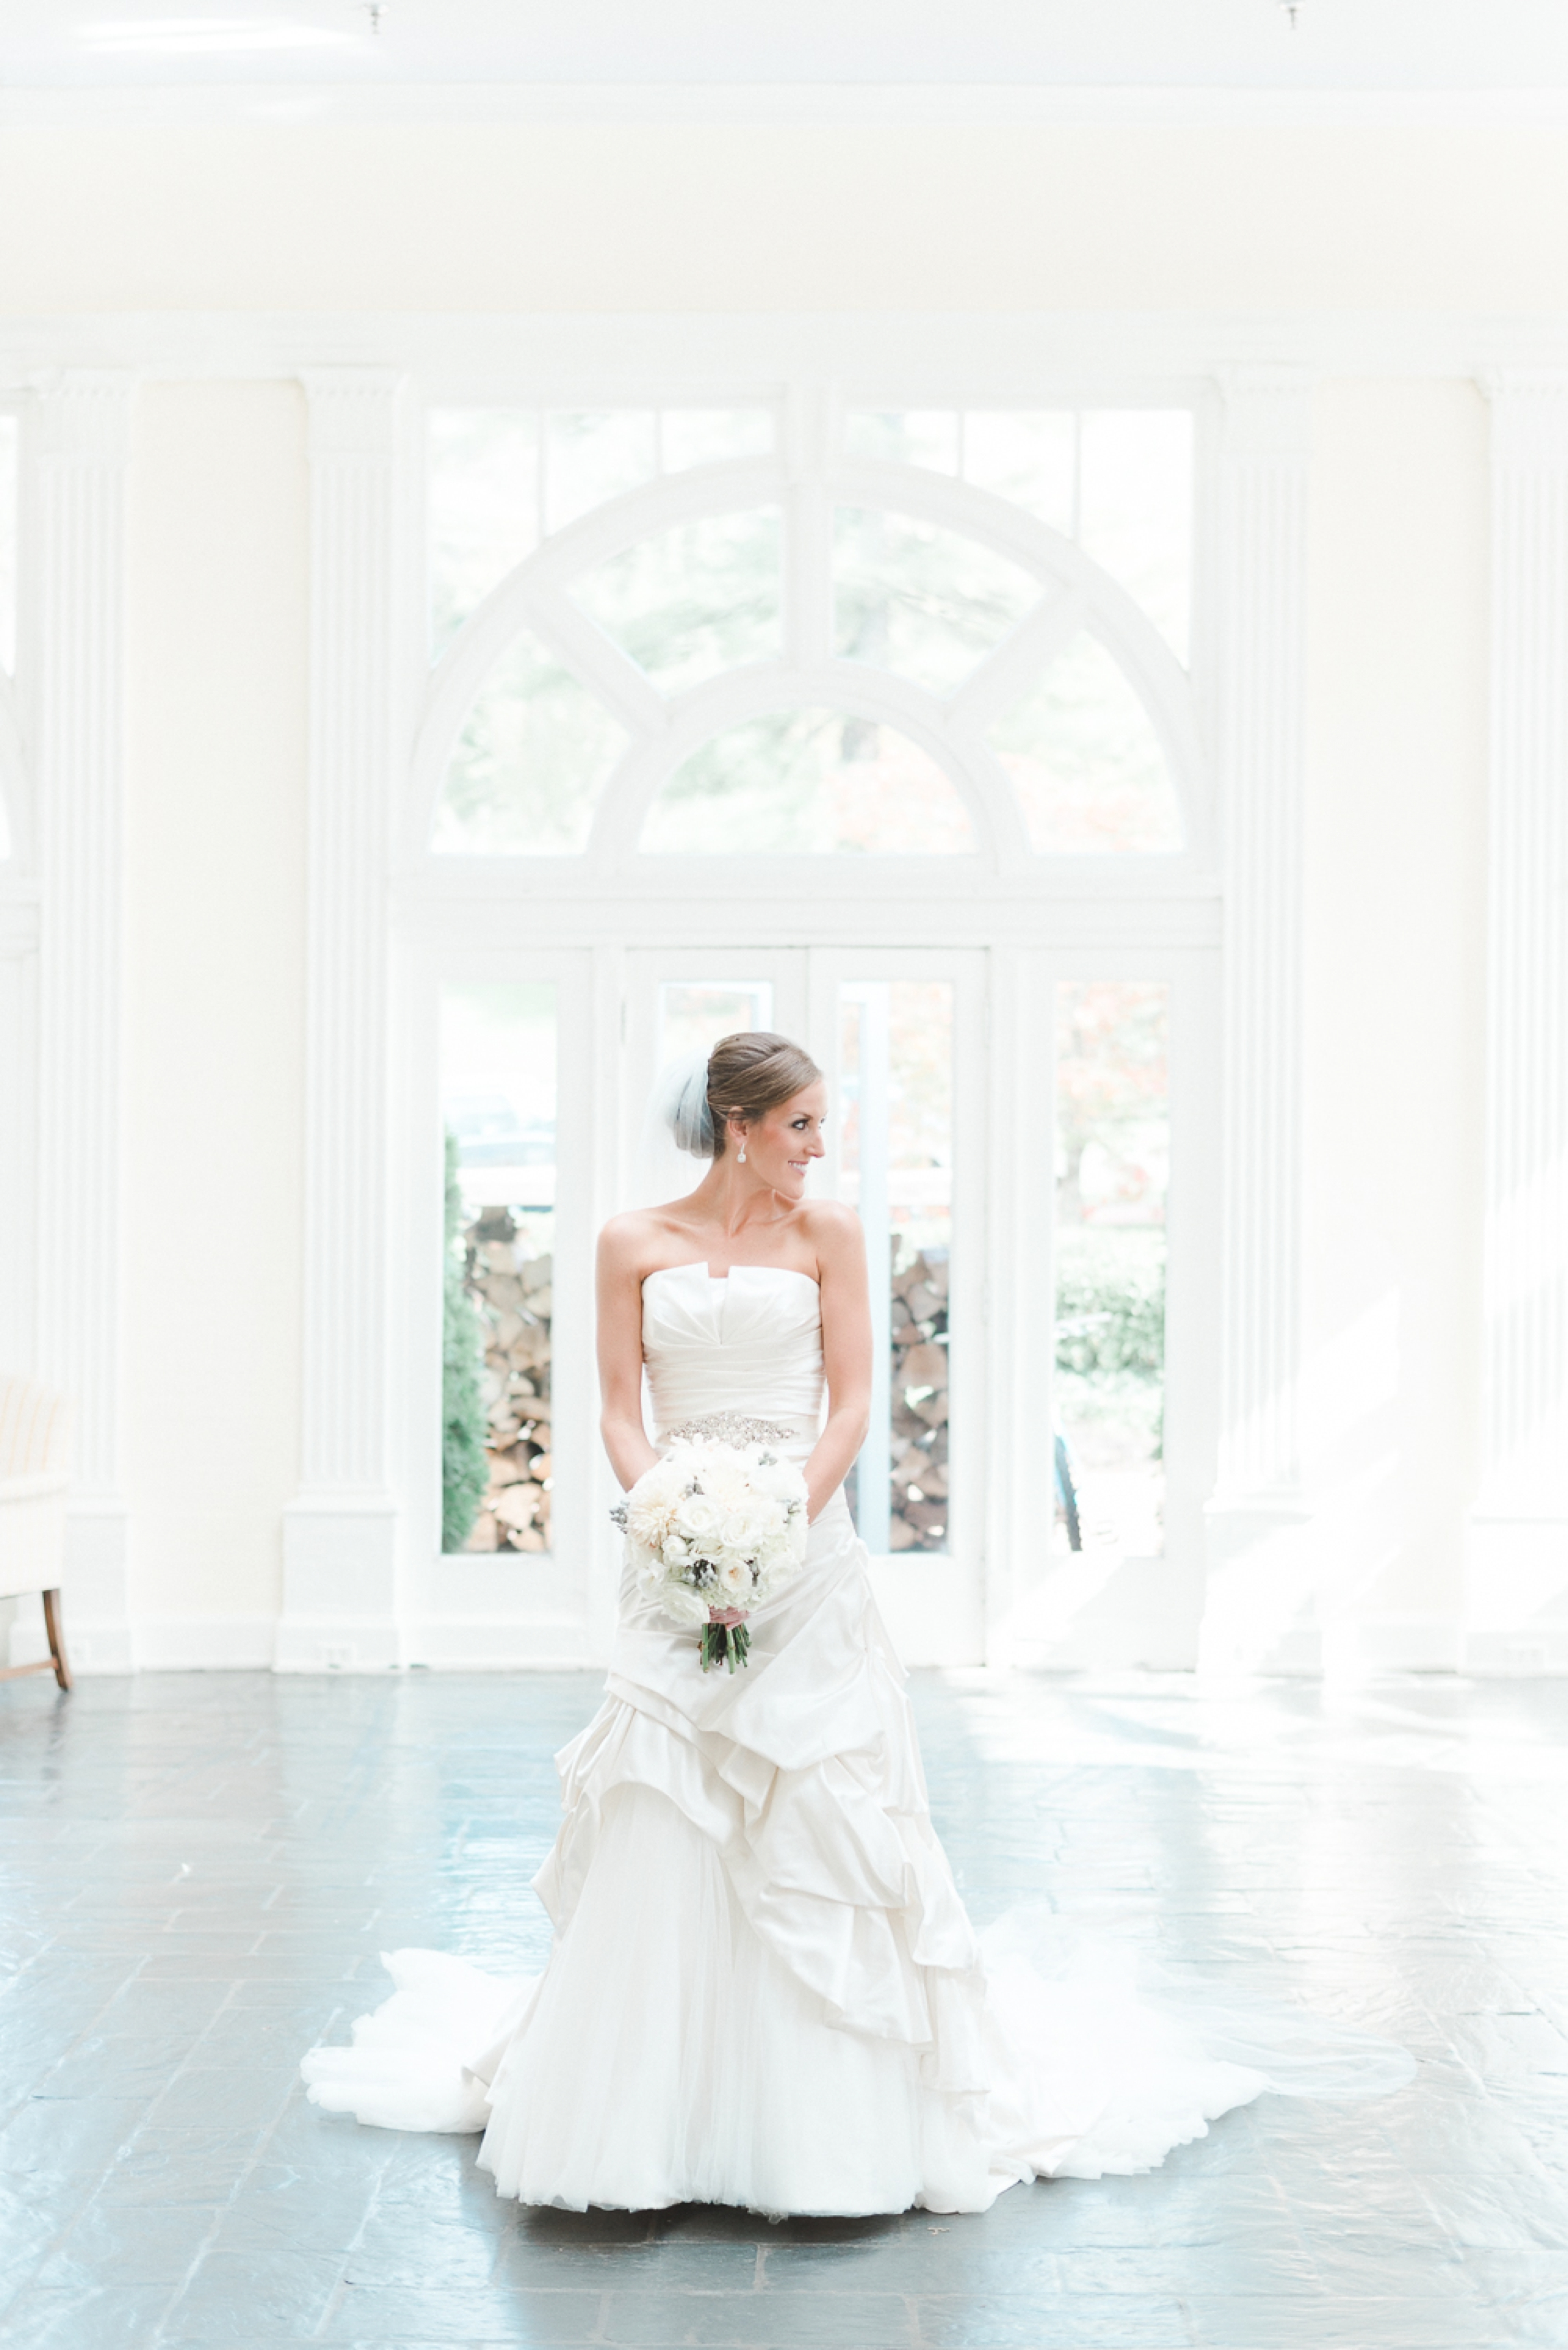 omni_homestead_wedding_0019.jpg